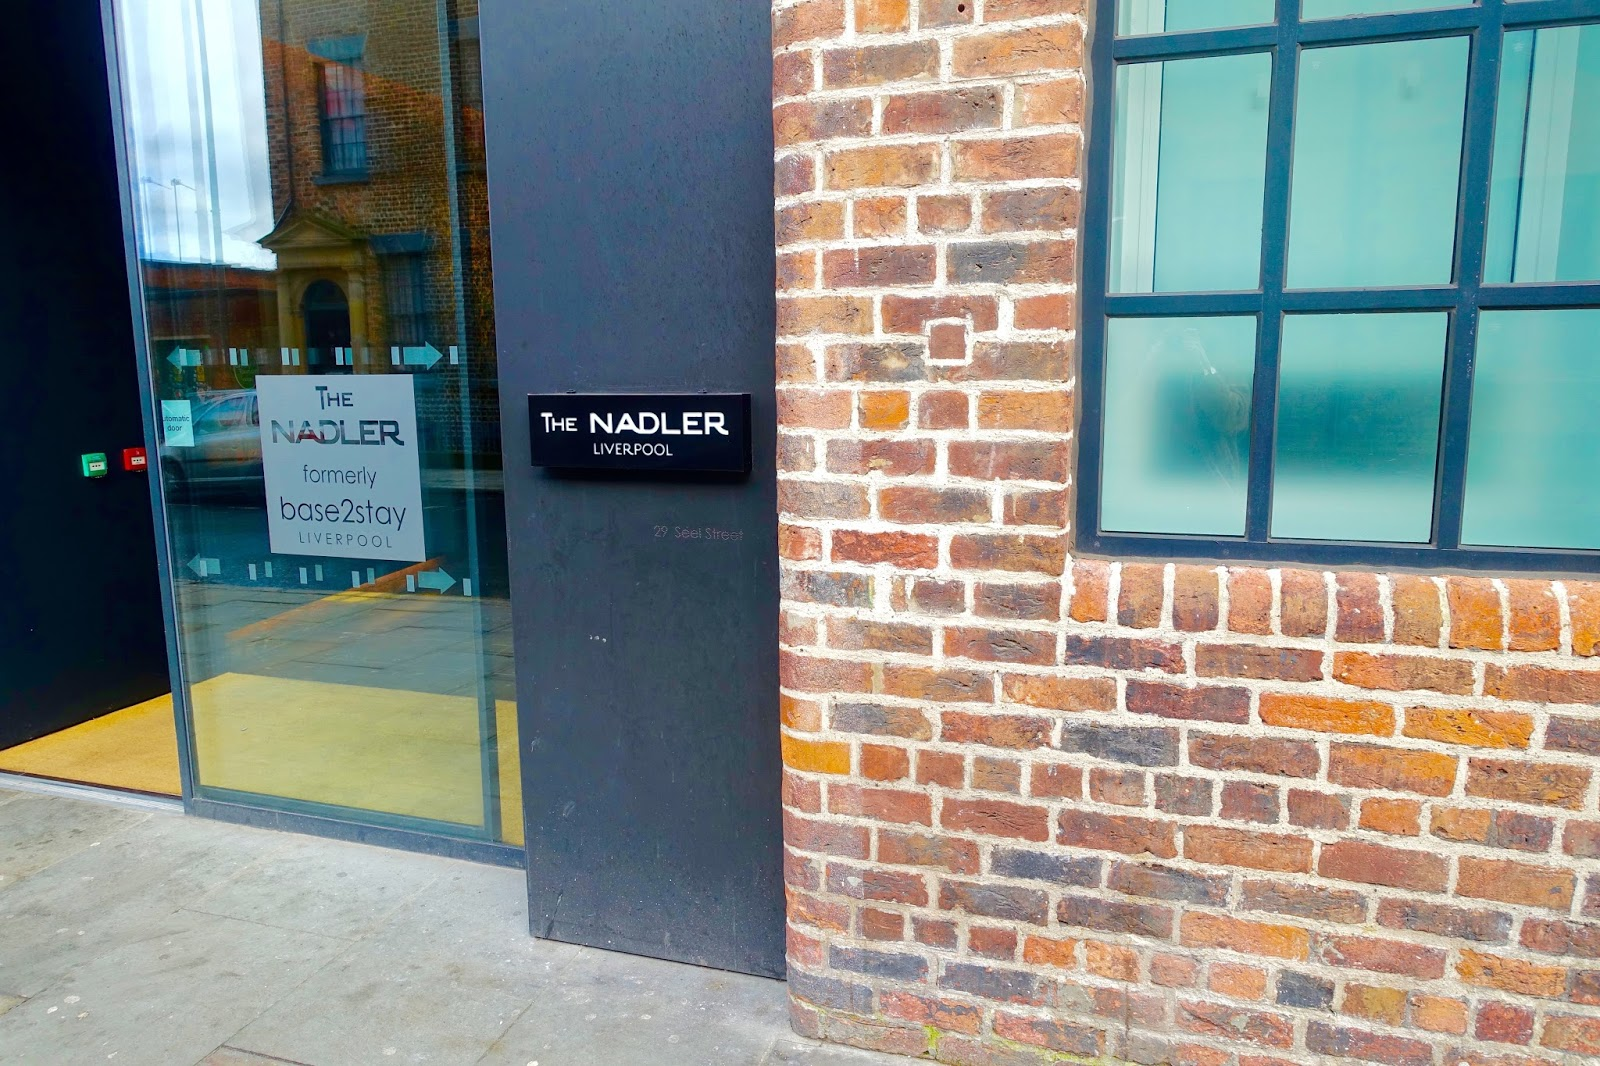 The nadler liverpool entrance